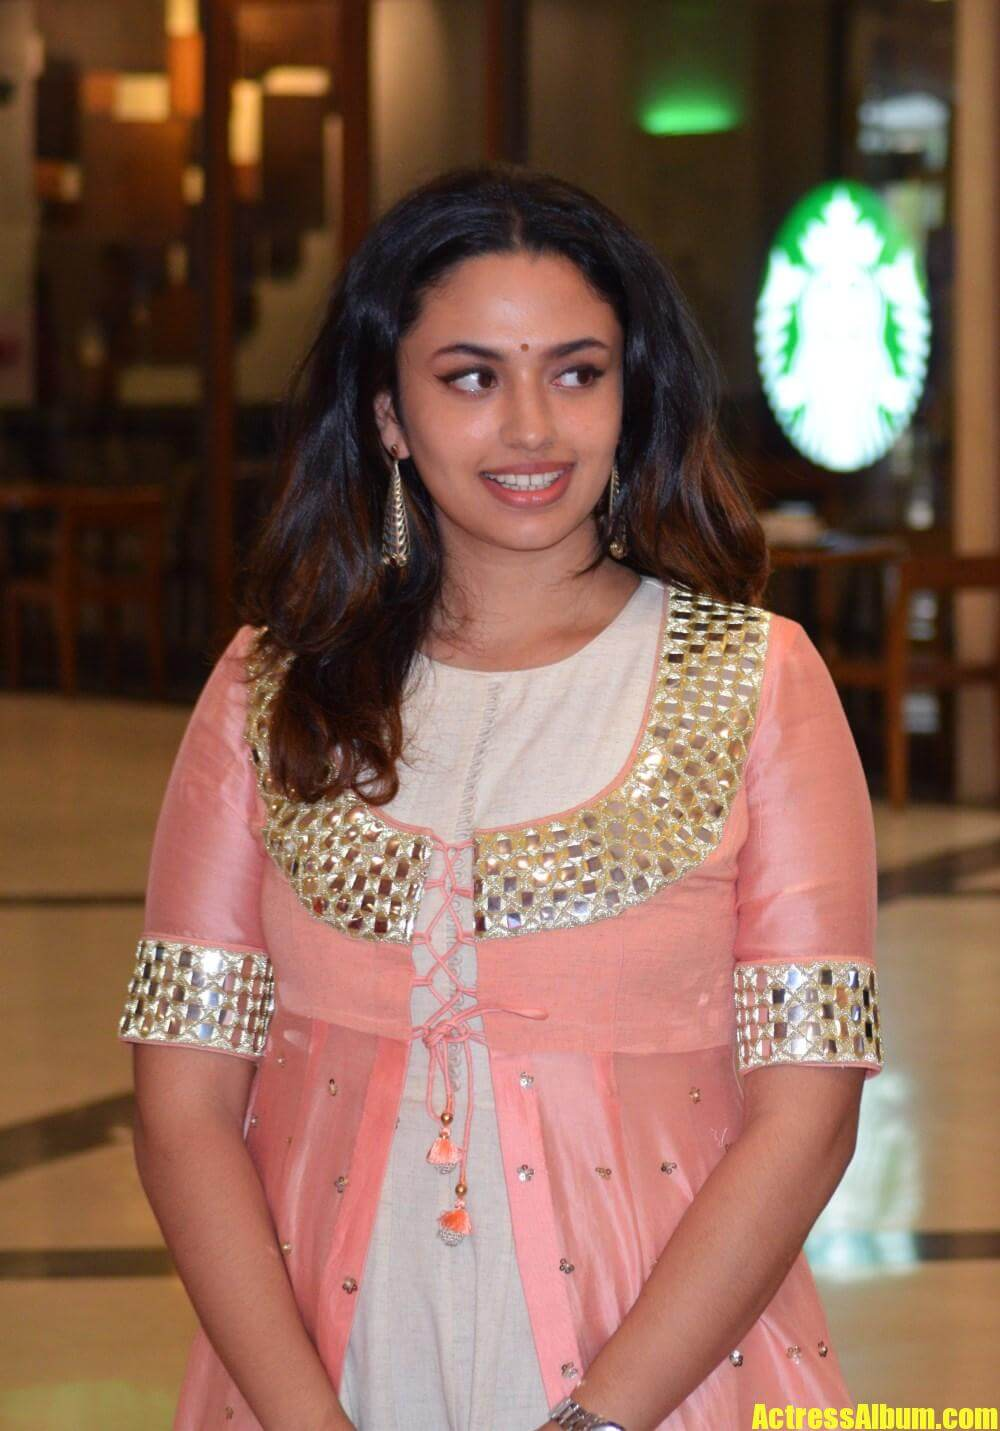 Malavika Nair At The Hindhu Air Asia Event